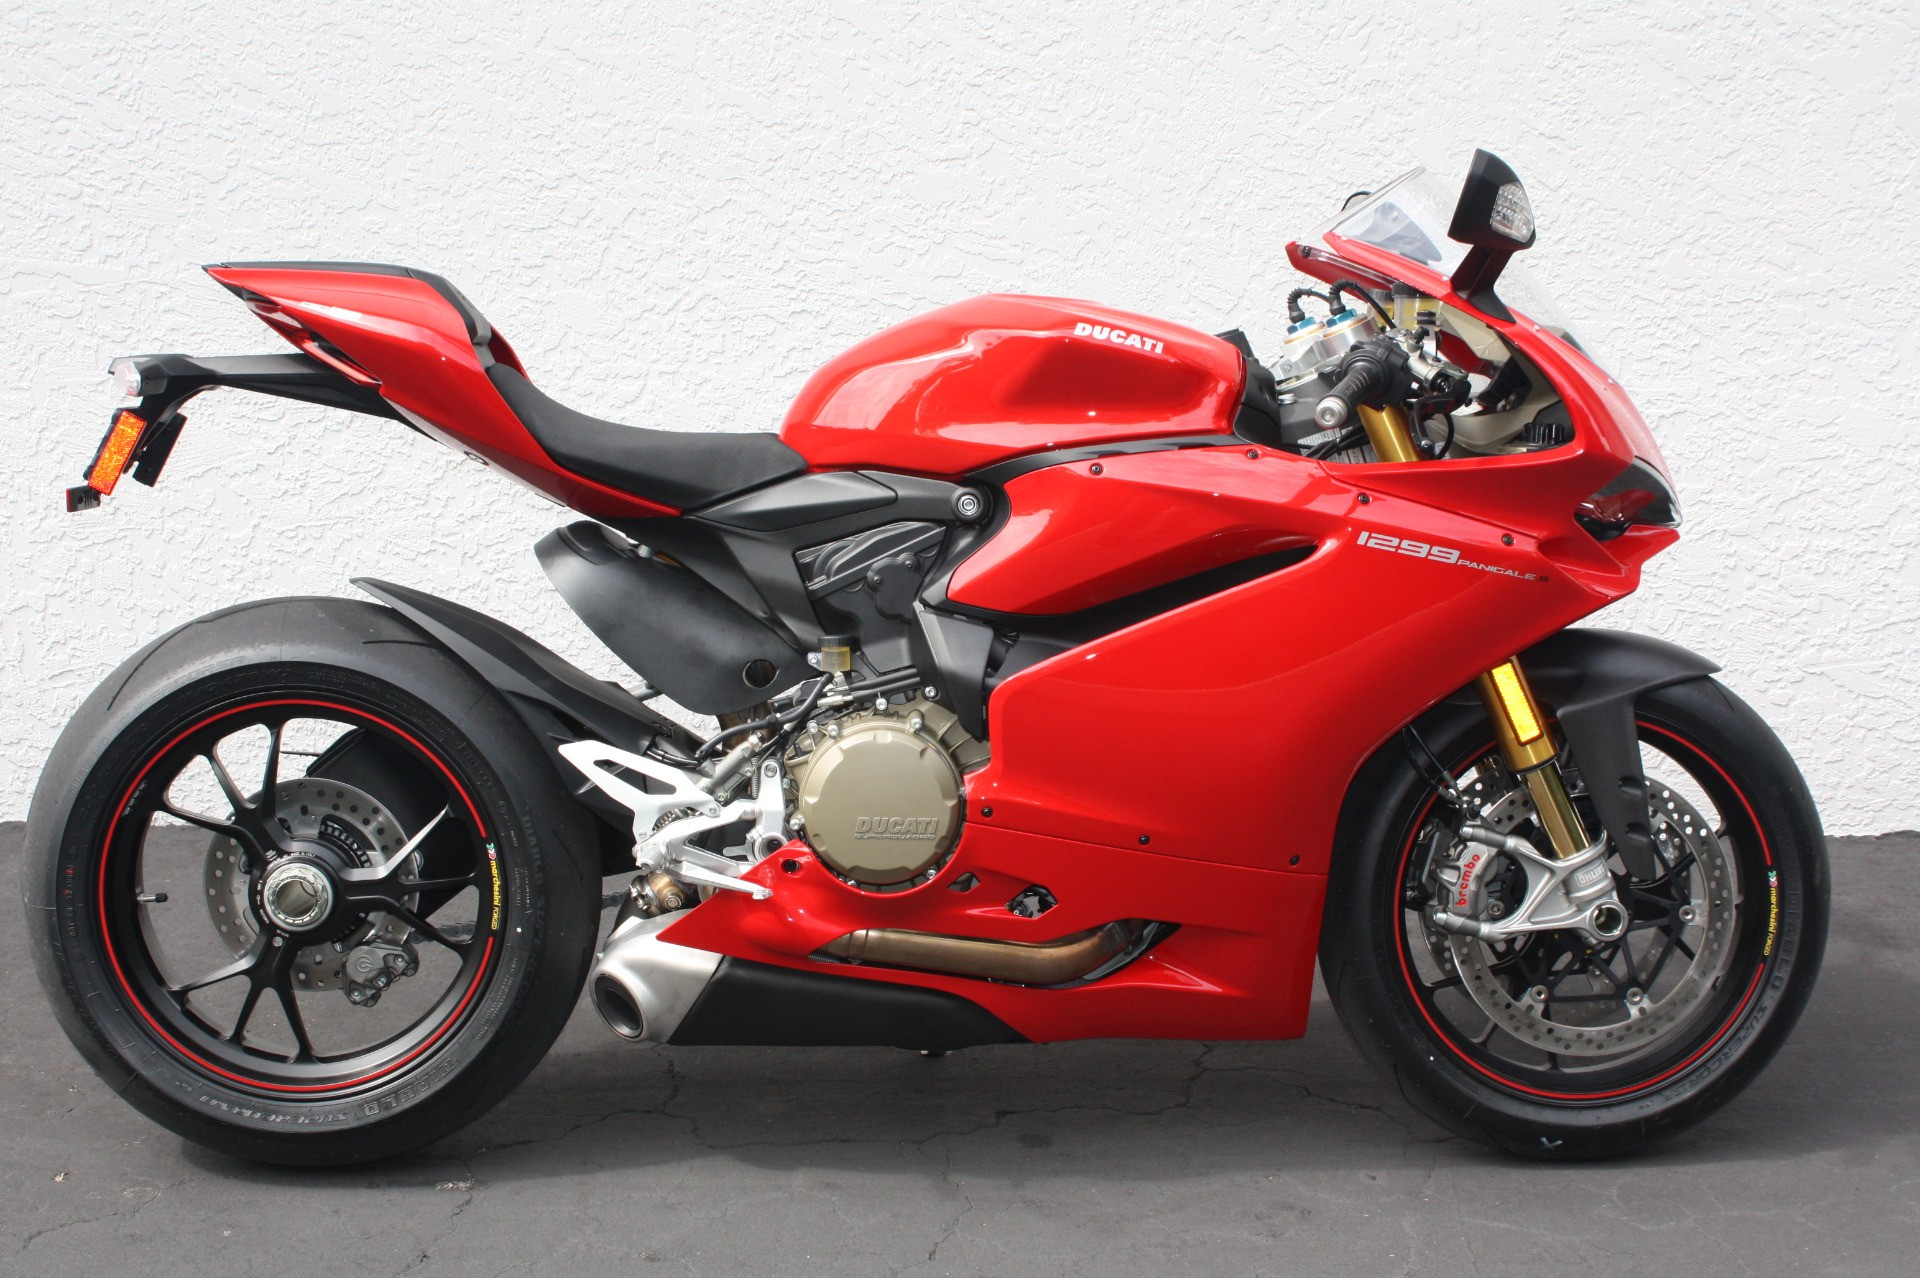 2016 1299 Panigale S